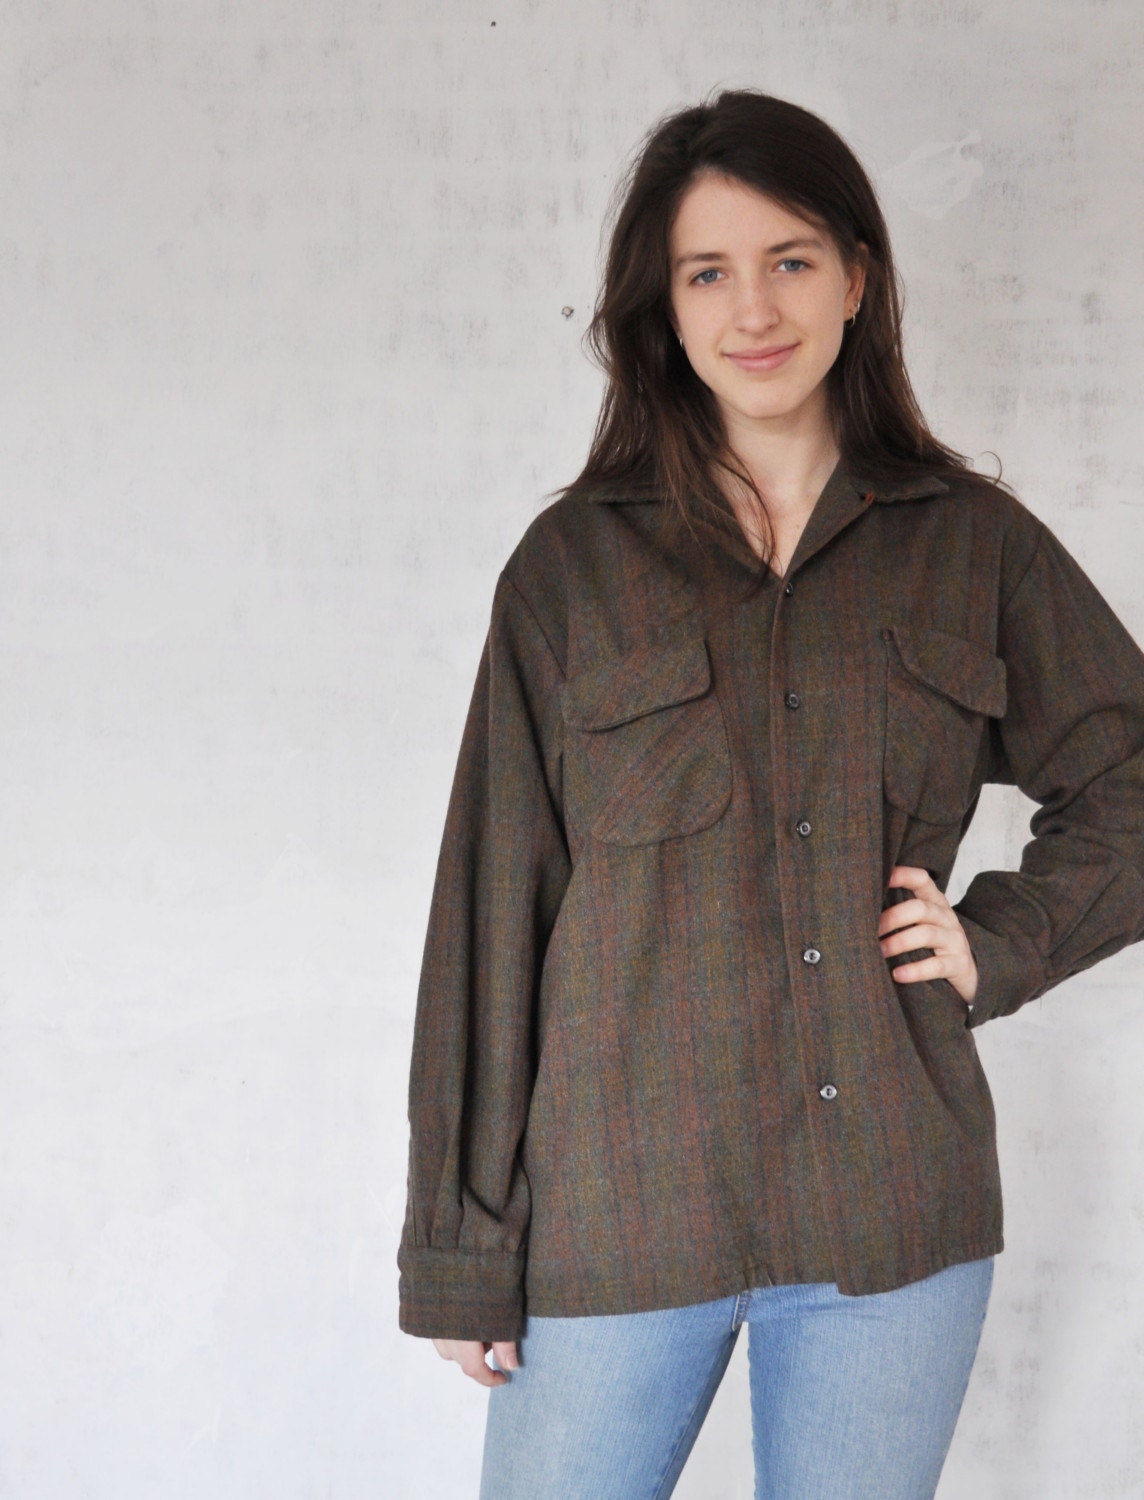 Vintage OVERSIZE 50s Plaid Flannel Shirt by MariesVintage on Etsy